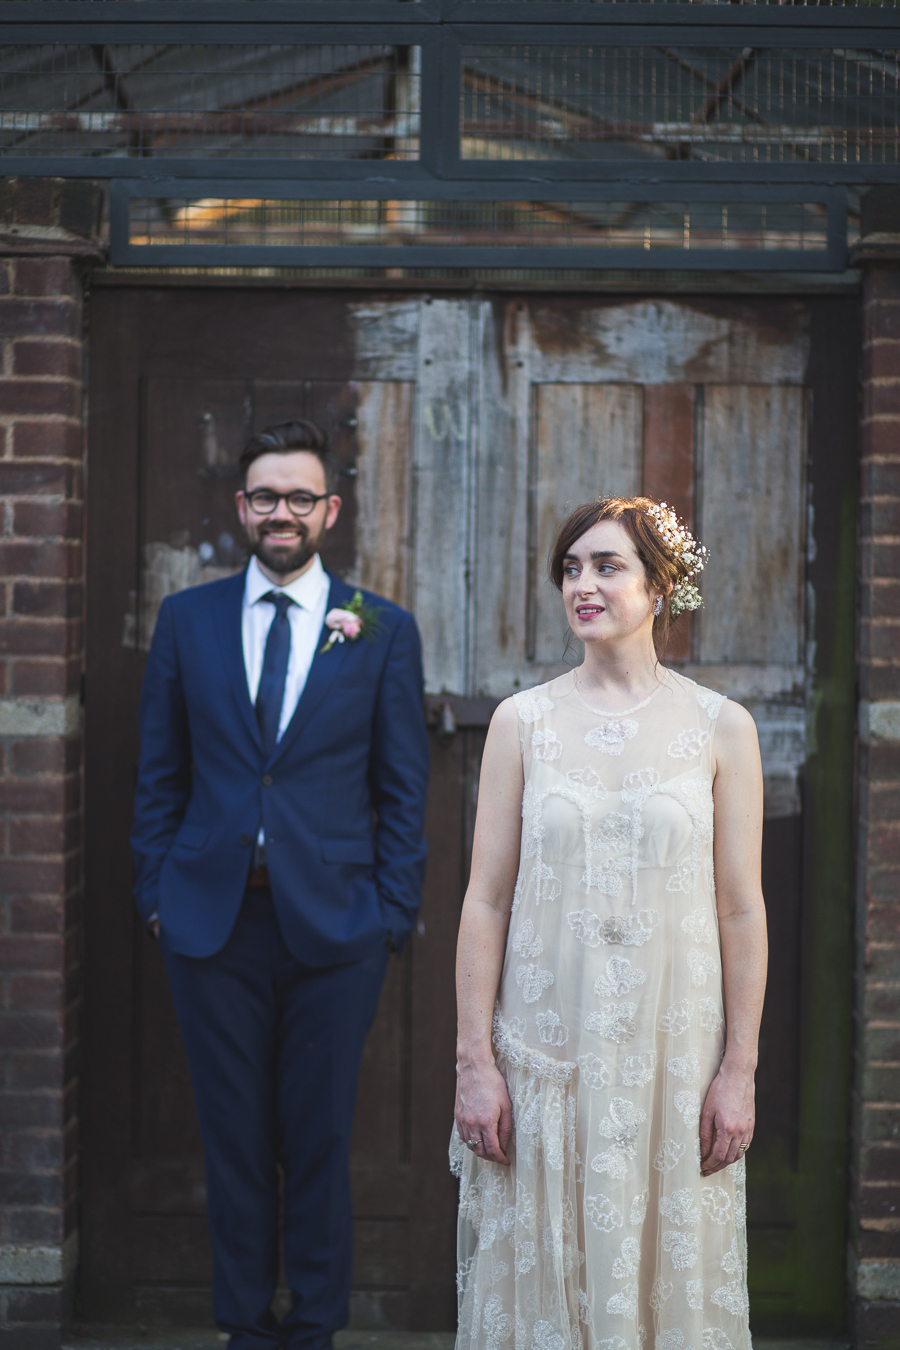 Eclectic, individual and timeless wedding styling at Hackney Round Chapel with images by Sam Taylor Photography (25)